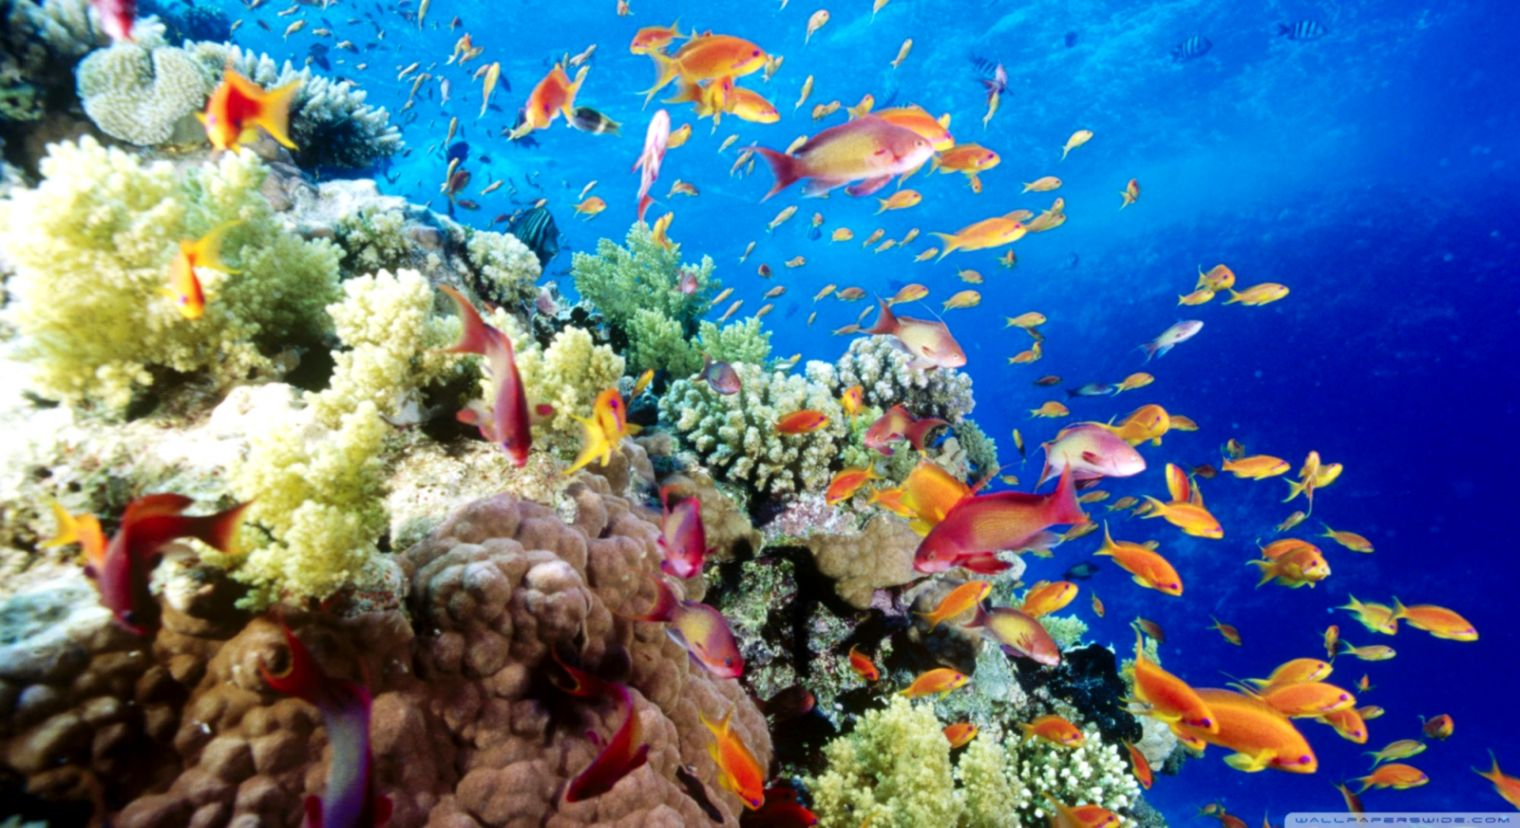 Coral reefs wallpaper lapizarraeducacion - Sea coral wallpaper ...